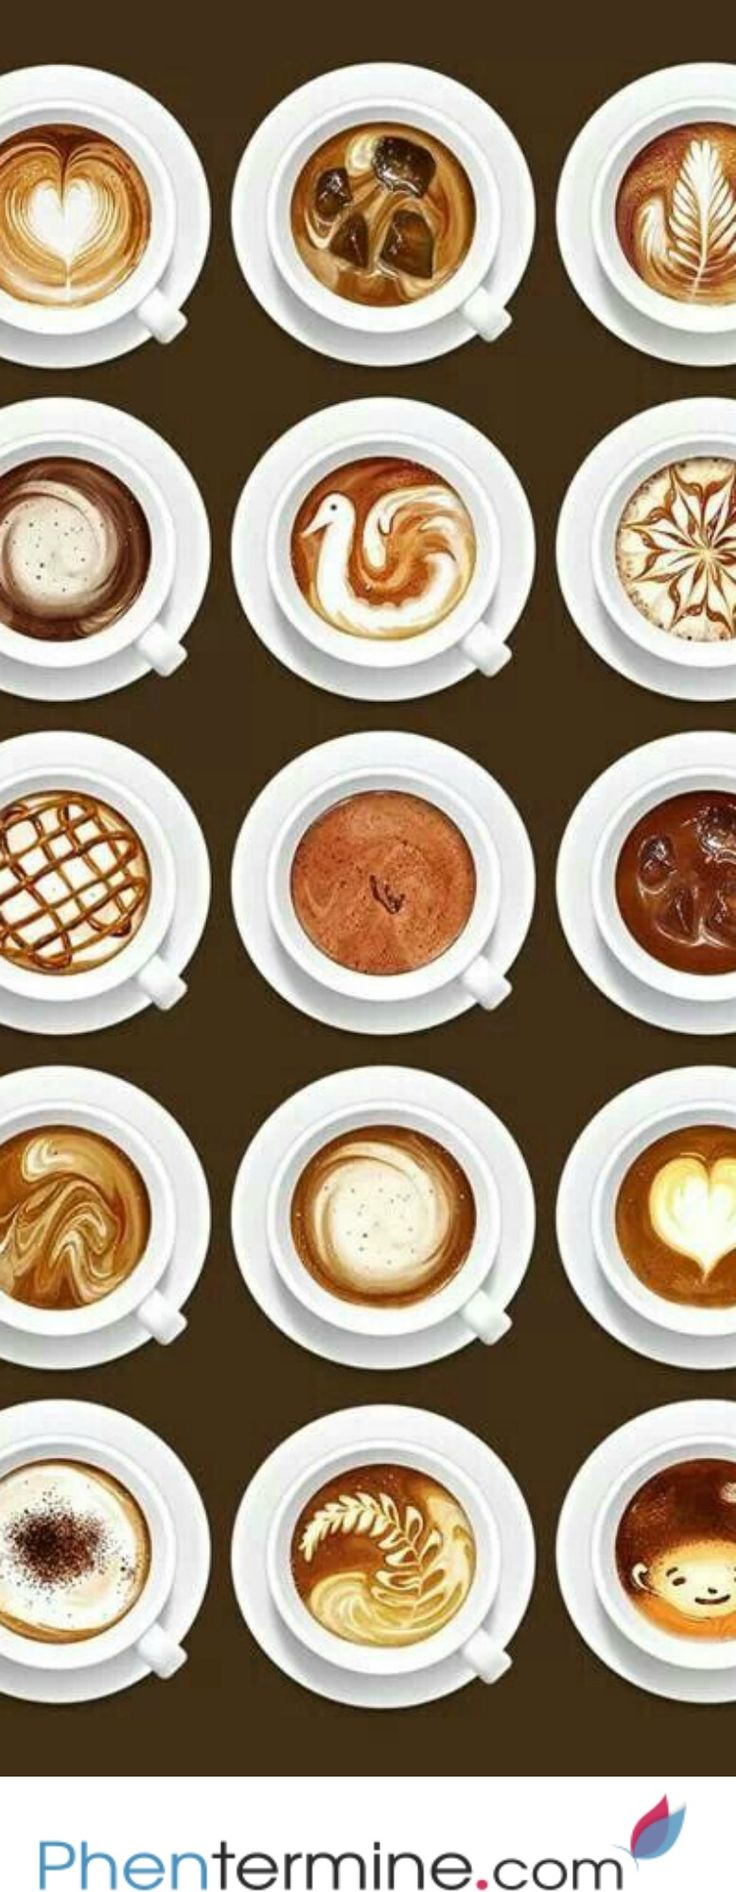 To maximize your phentermine weight loss, your coffee shouldn't add up to more than 100 calories, so if you like your coffee with all the trimmings then maybe it should be a weekly treat. #weightloss #health #loseweigth #fit #fitness #happy #healthy #sugar #recipe #breakfast #motivation #funny #phentermine #strong #workout #healthy #diet